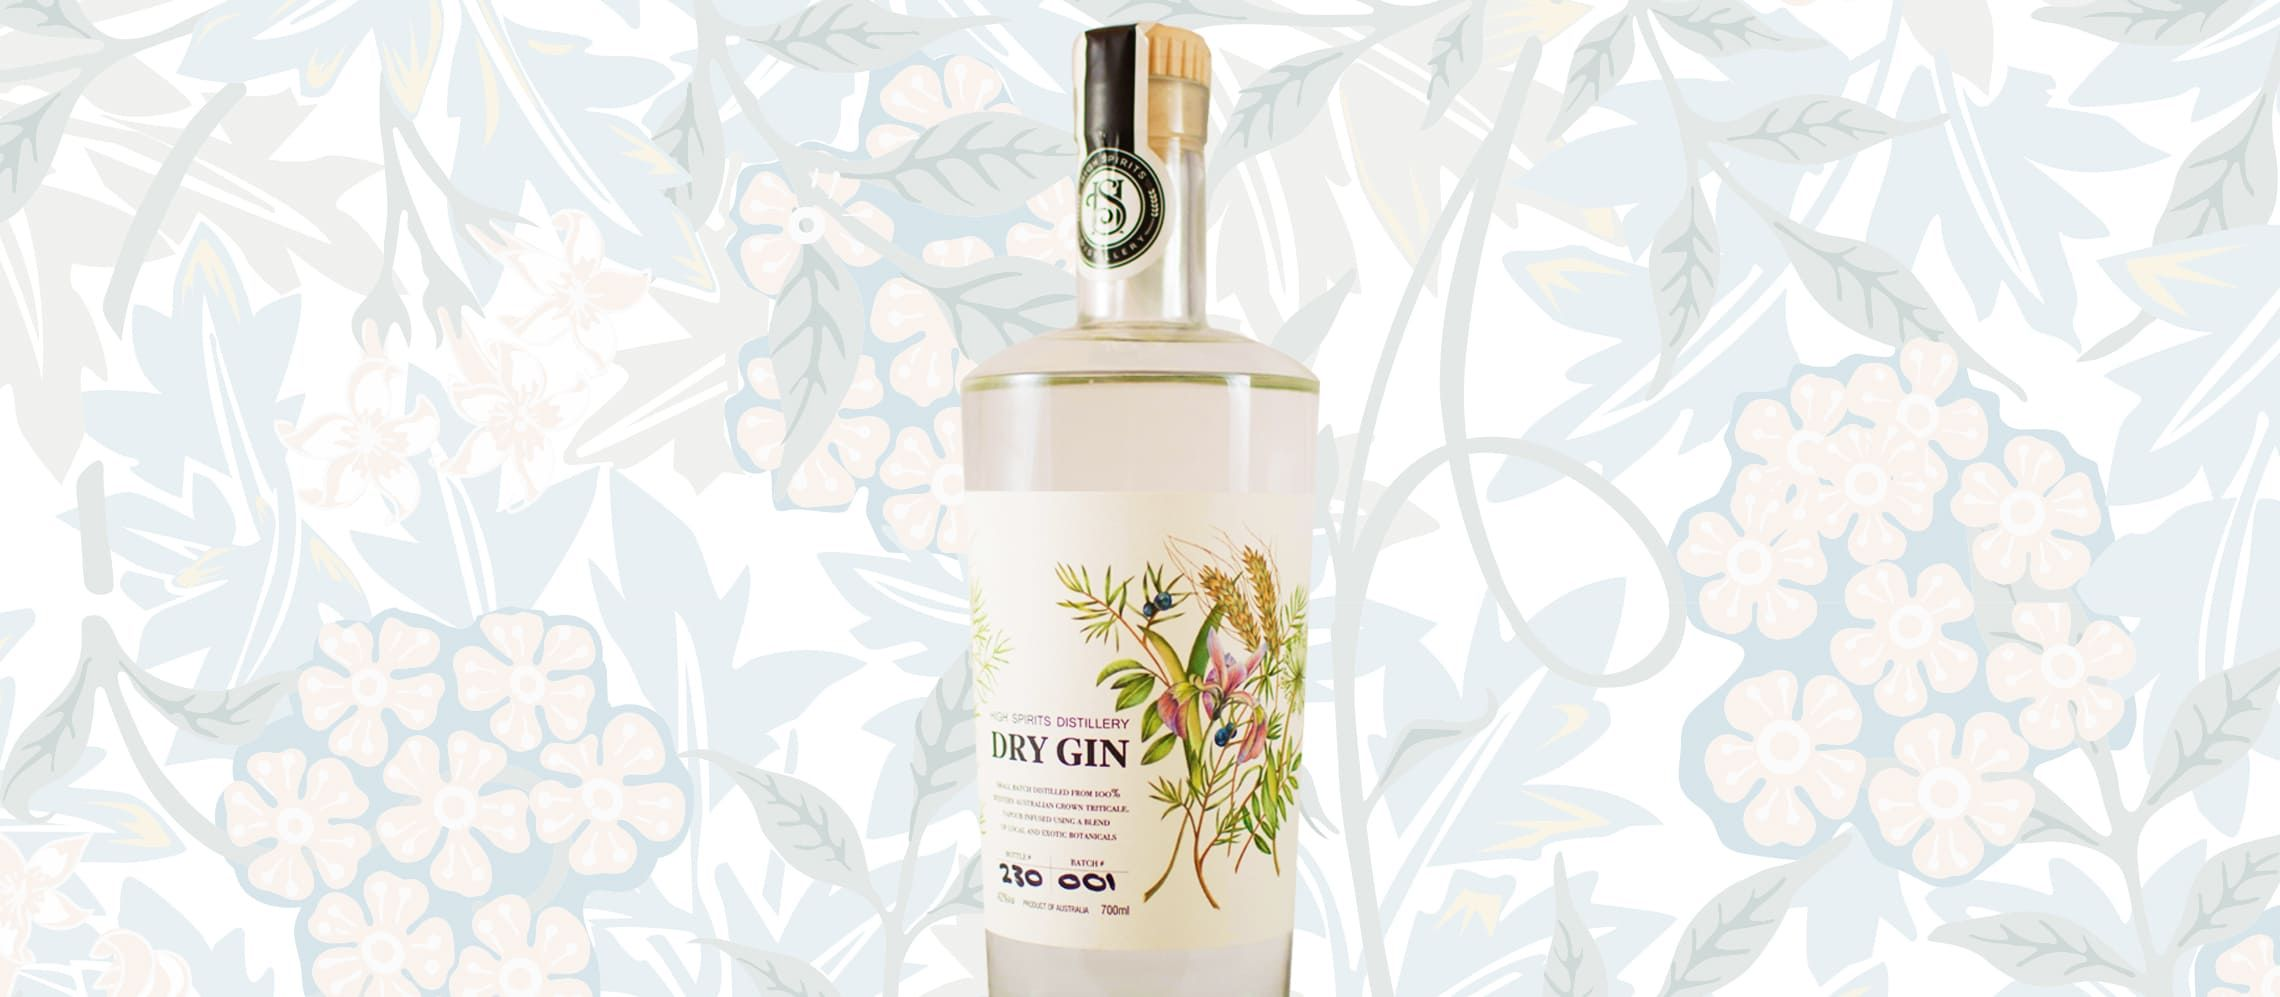 Photo for: Finest Four for High Spirits Distillery at a London Competition